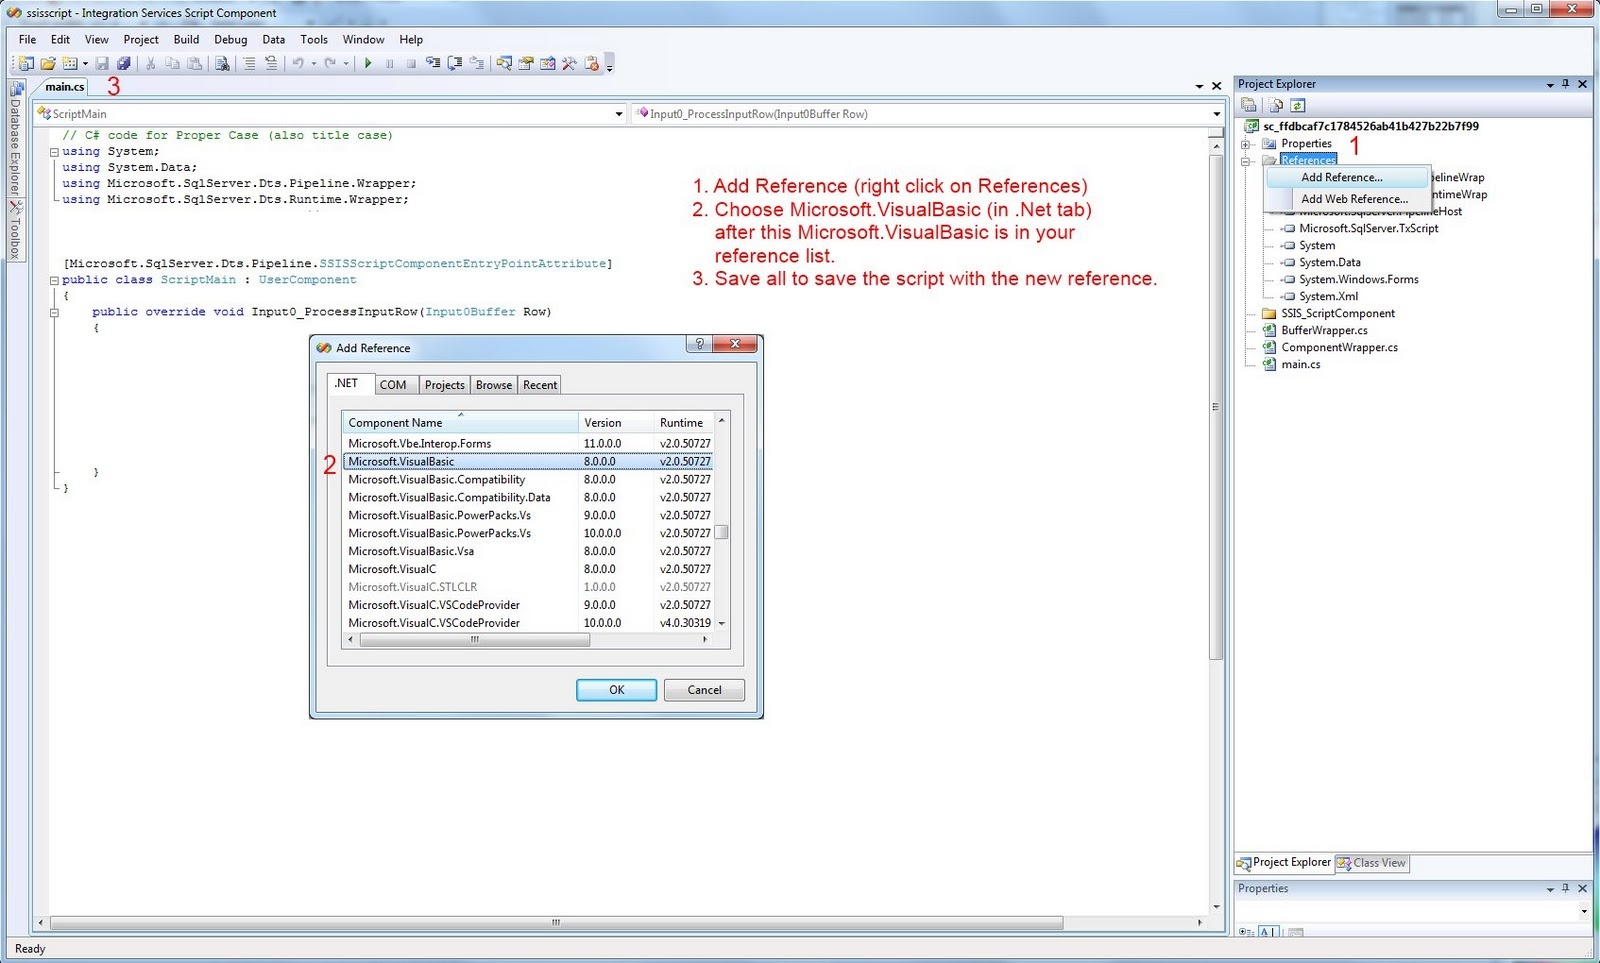 Microsoft SQL Server Integration Services: ProperCase in SSIS